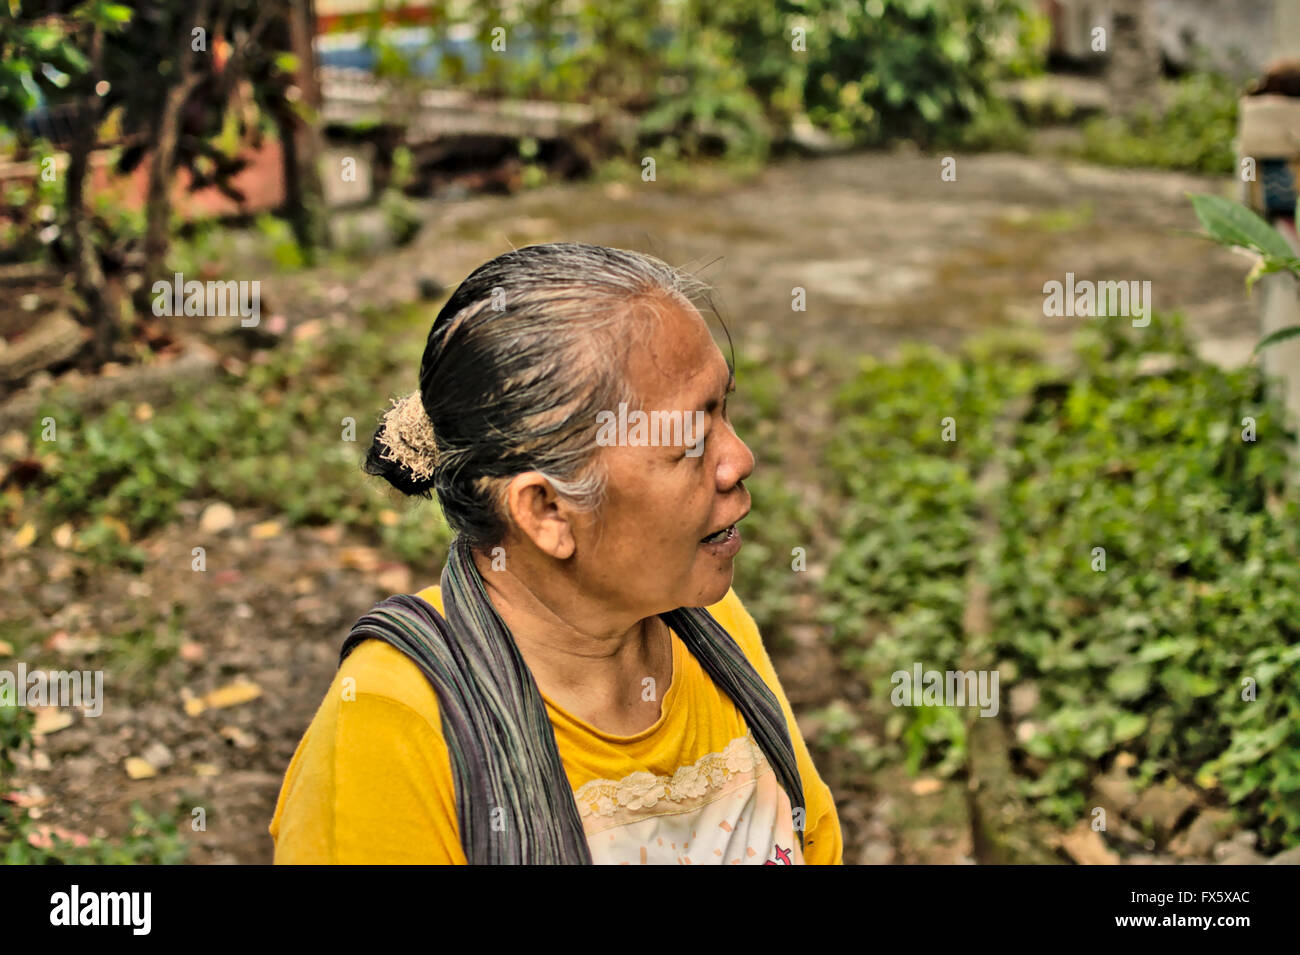 A Javanese woman seller of jamu, traditional Indonesian medicine, which she makes herself from herbs. - Stock Image